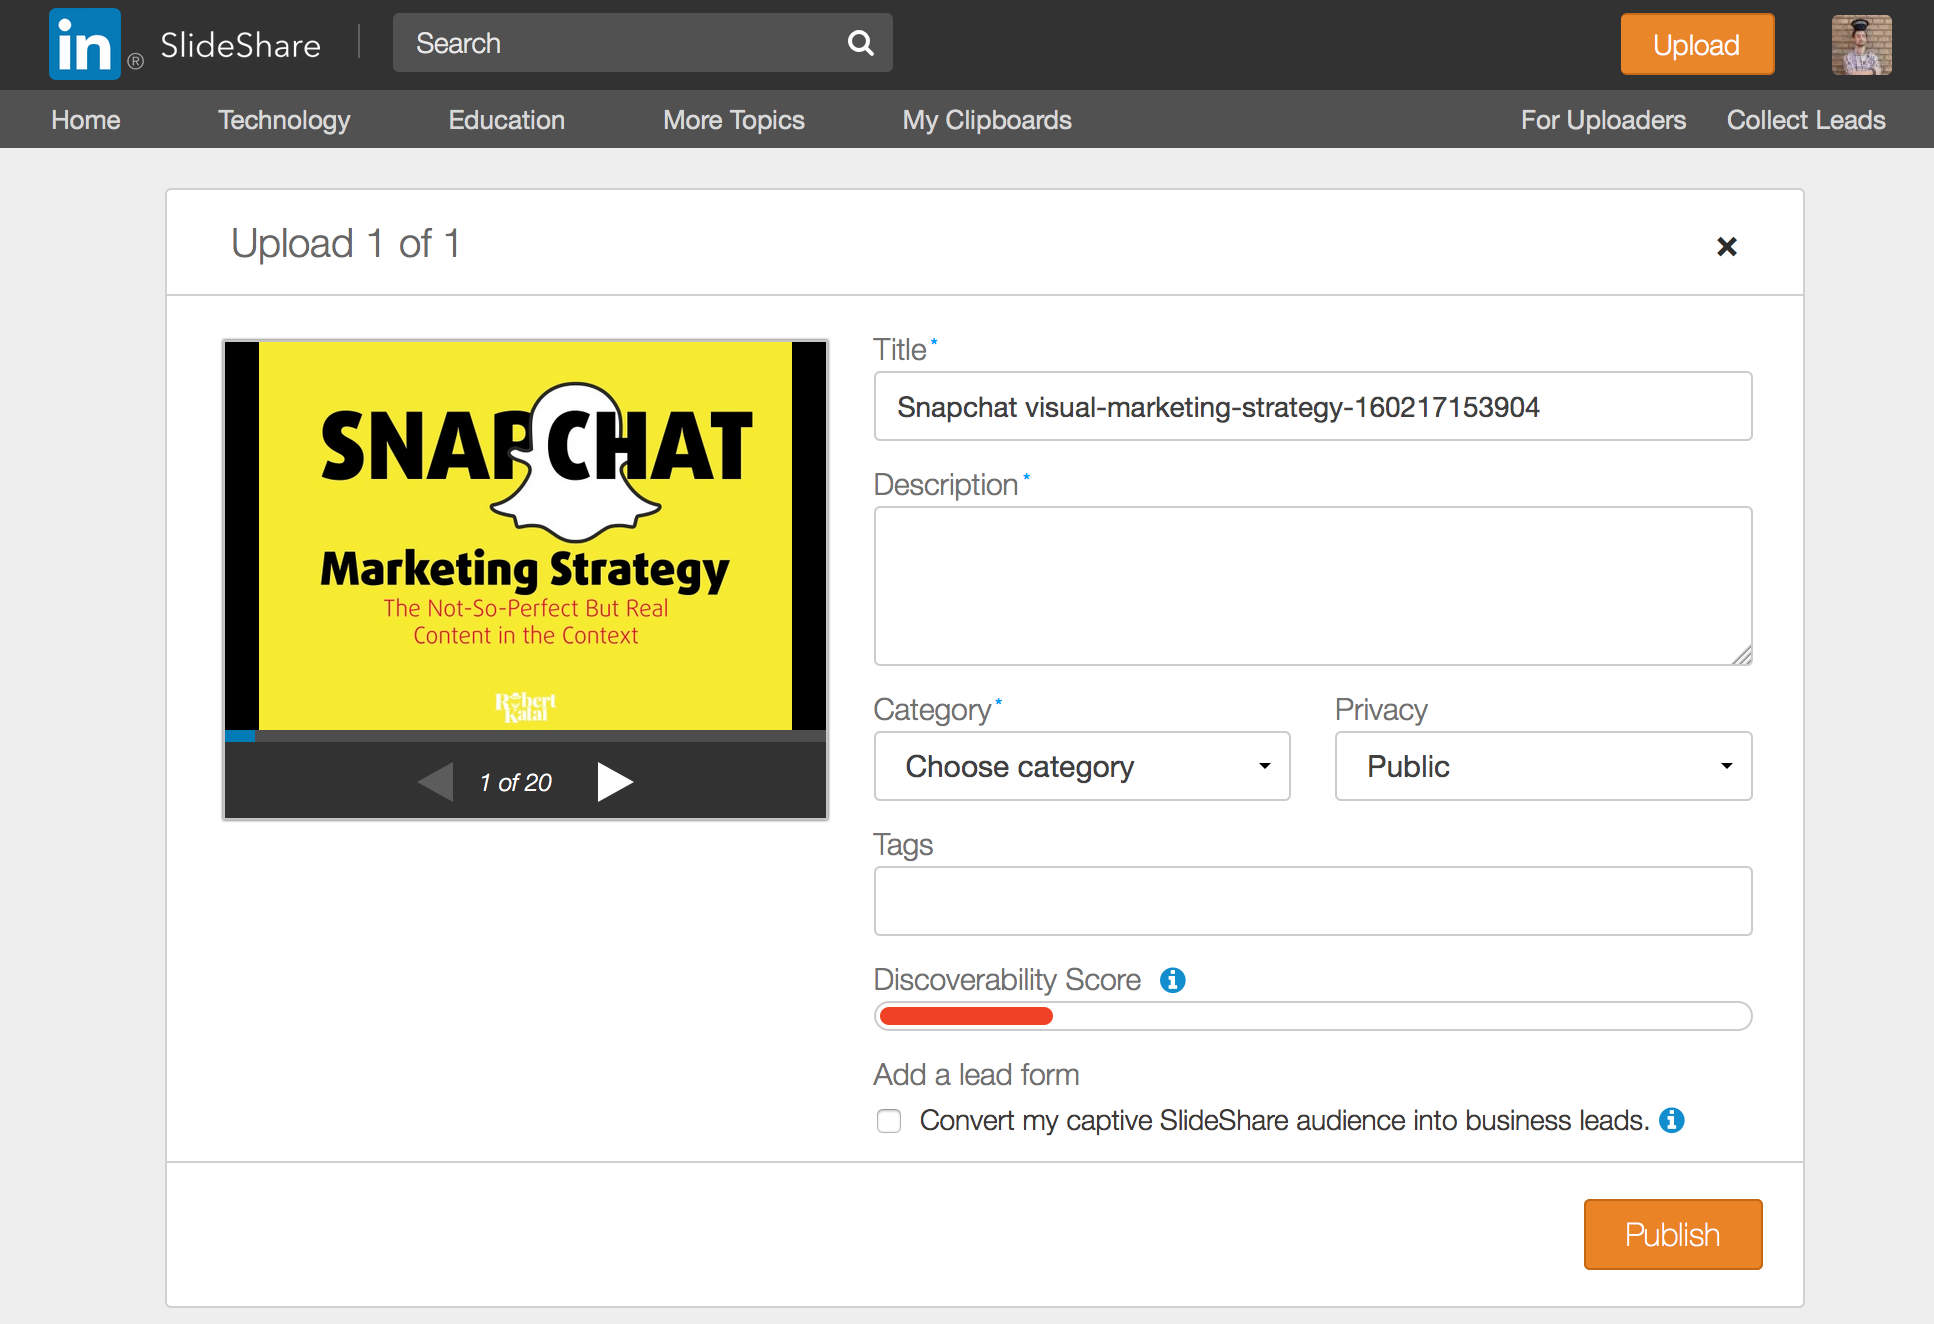 How To Get Your First 500 Followers on Slideshare